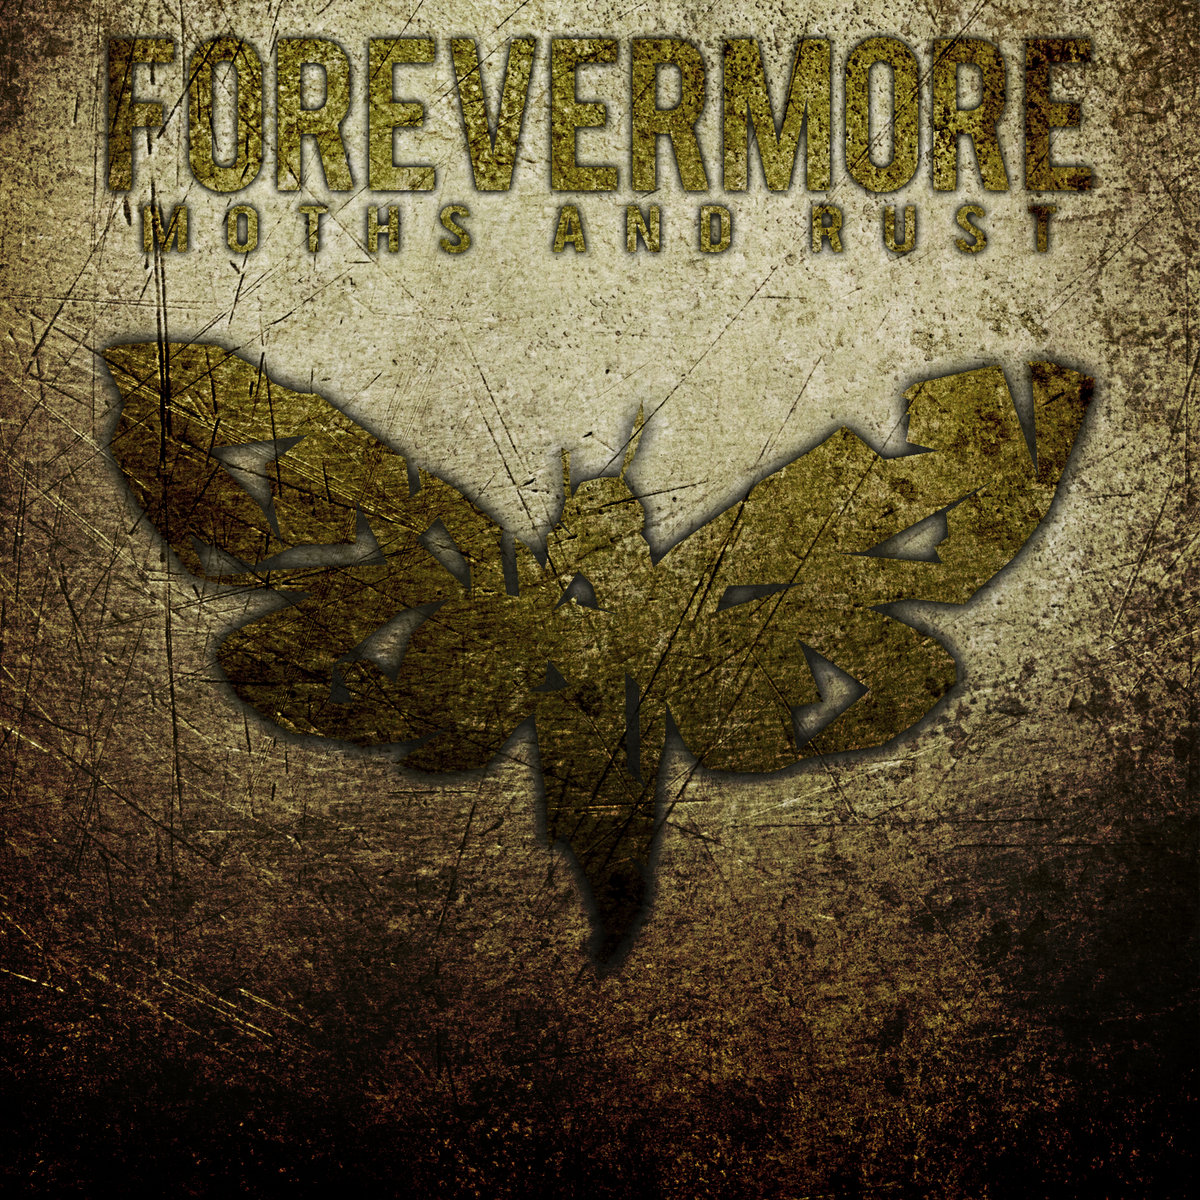 forevermore moths and rust